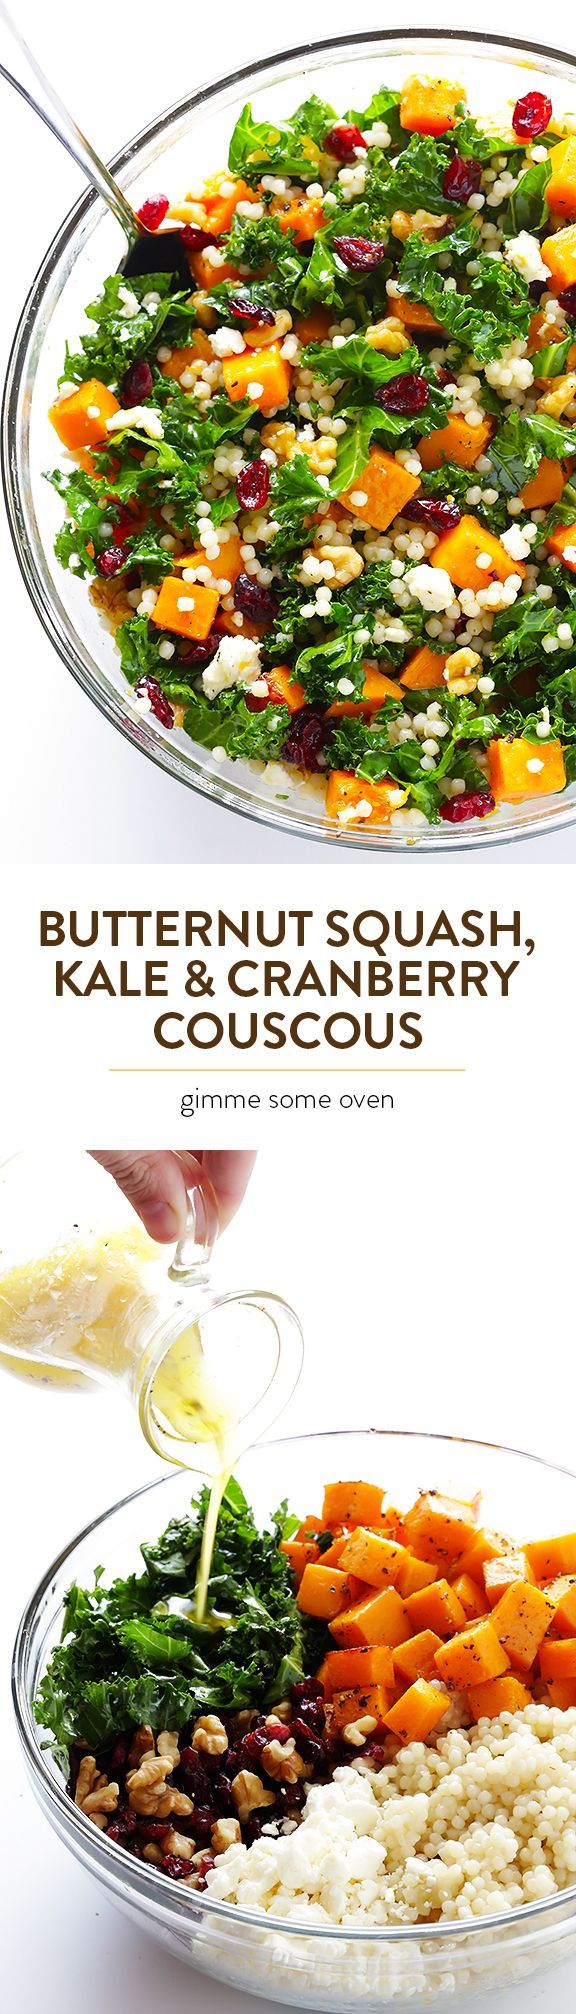 This Roasted Butternut Squash, Kale & Cranberry Couscous is simple to make, seasonal, and so hearty and delicious! | gimmesomeoven.com